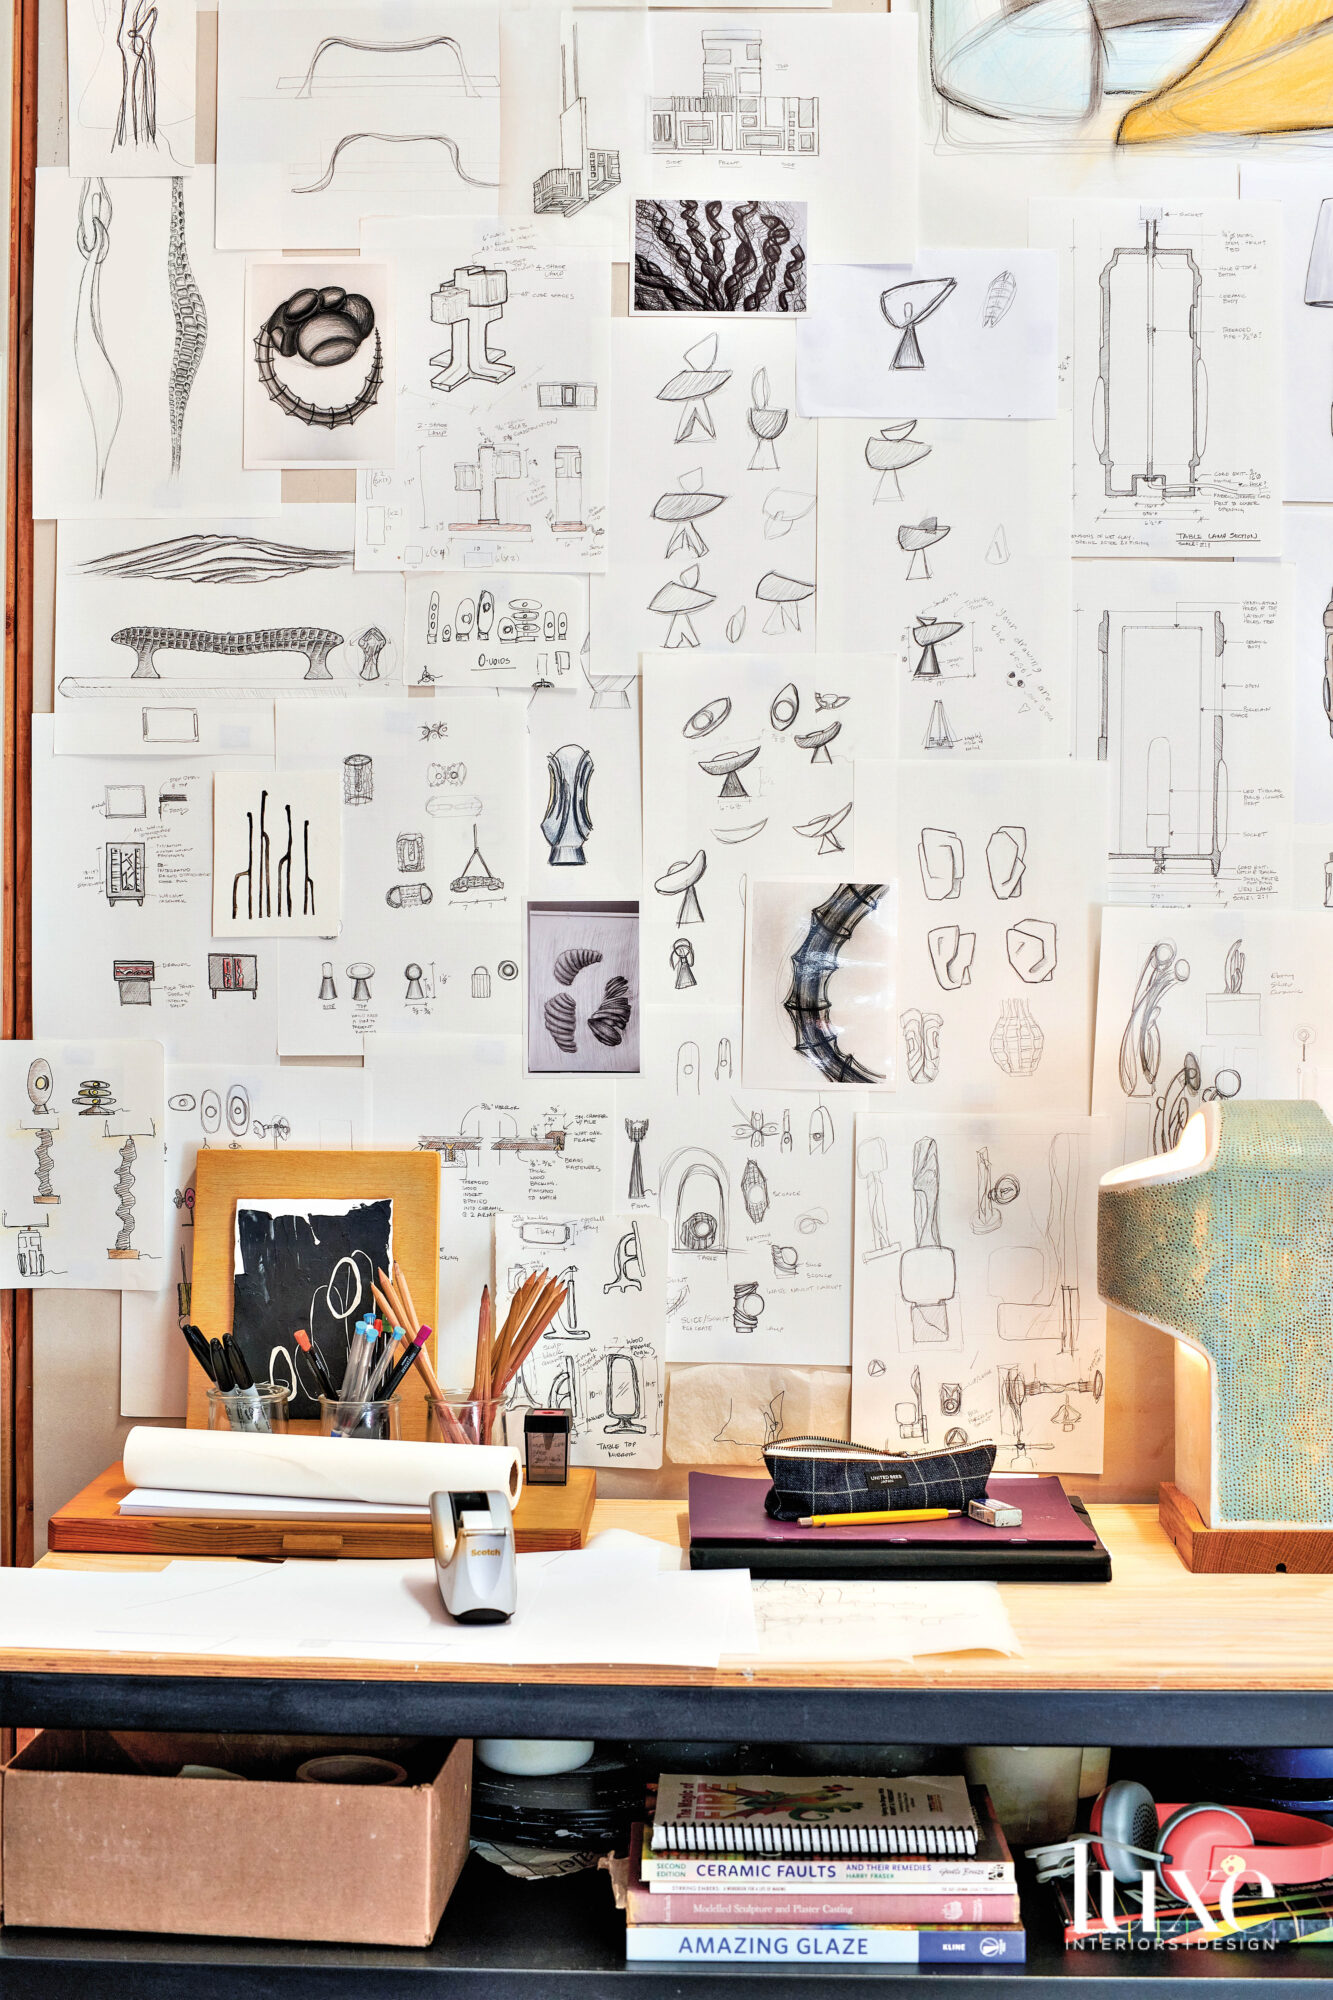 A wall with sketches